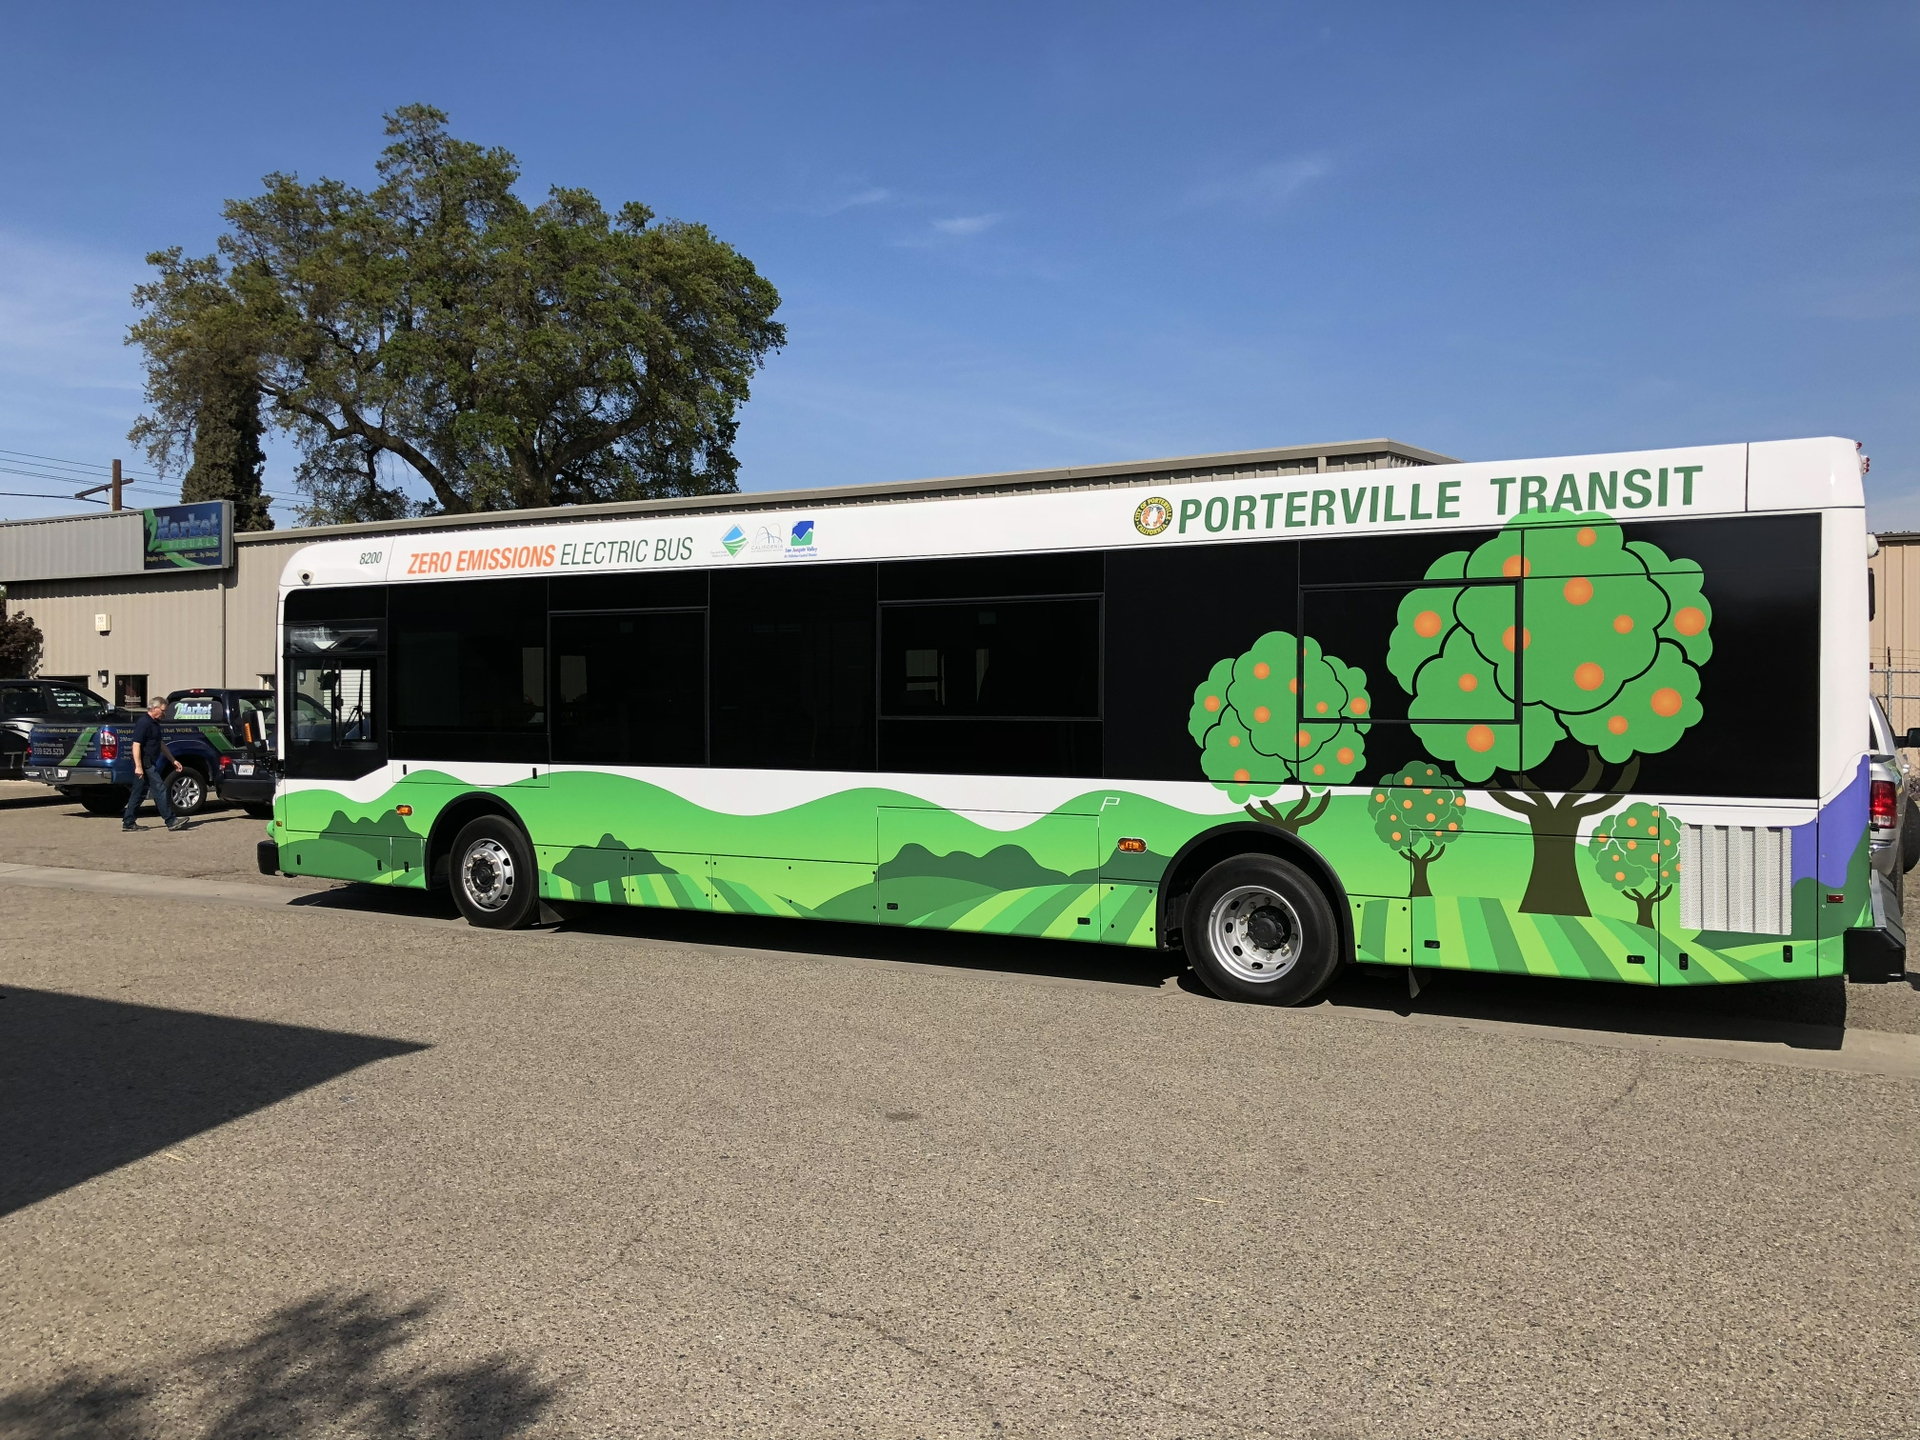 Porterville Transit took part in SCE's Charge Ready Transport pilot.